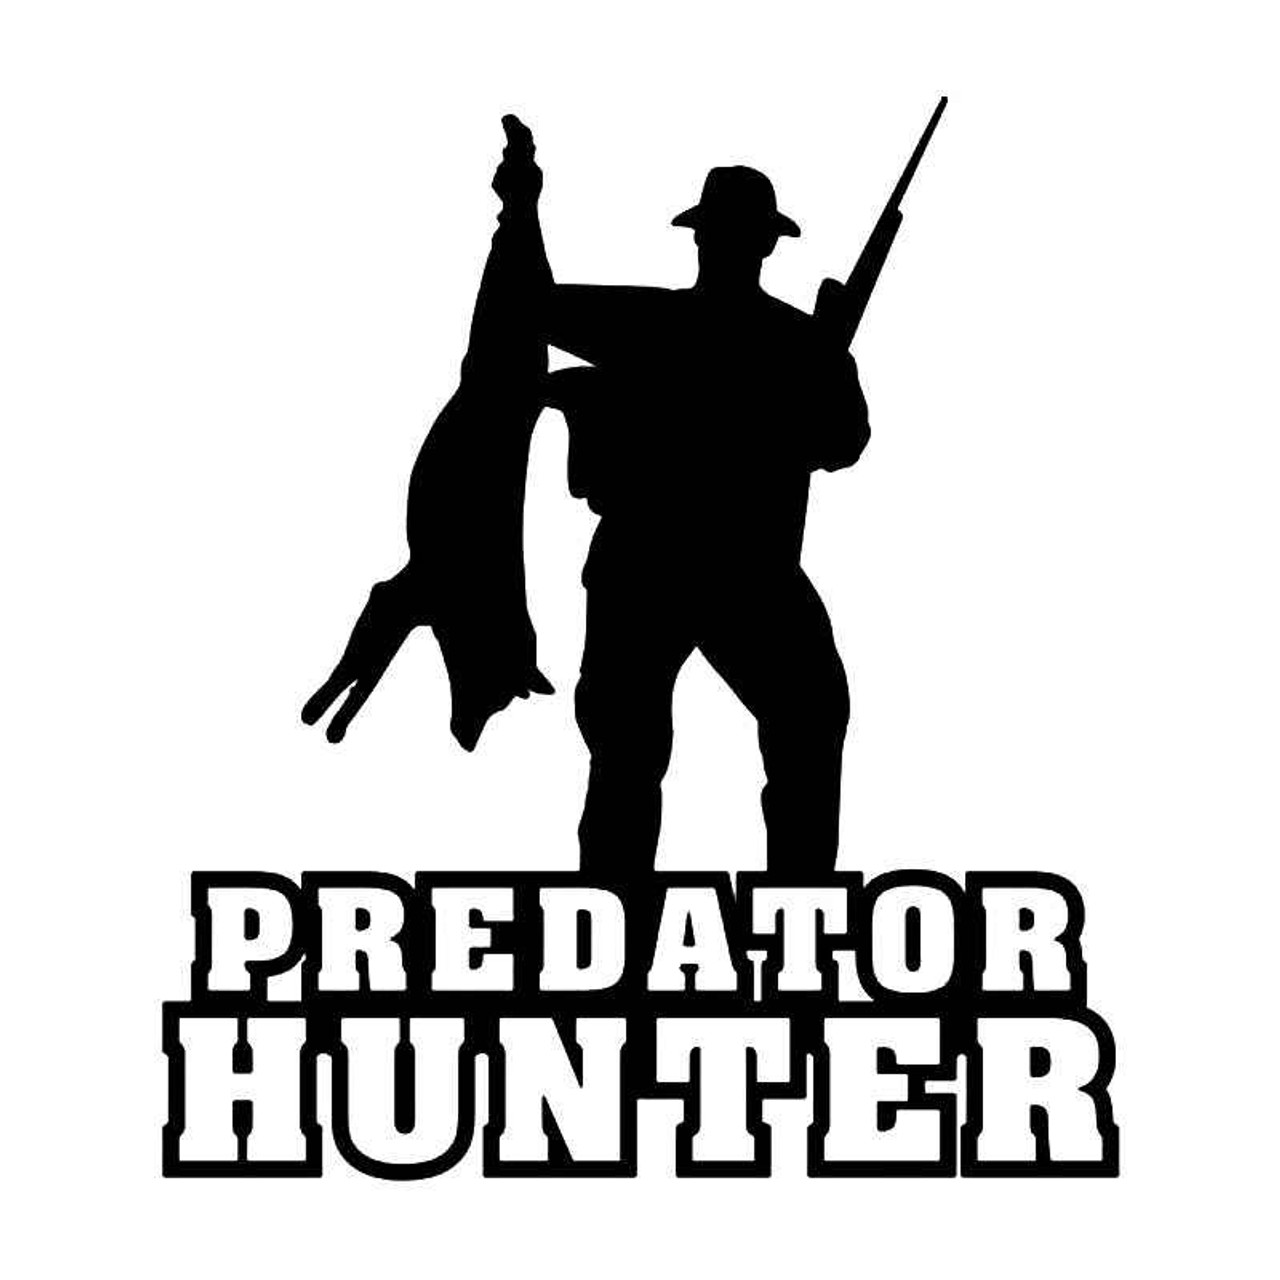 Predator hunter hunting vinyl sticker